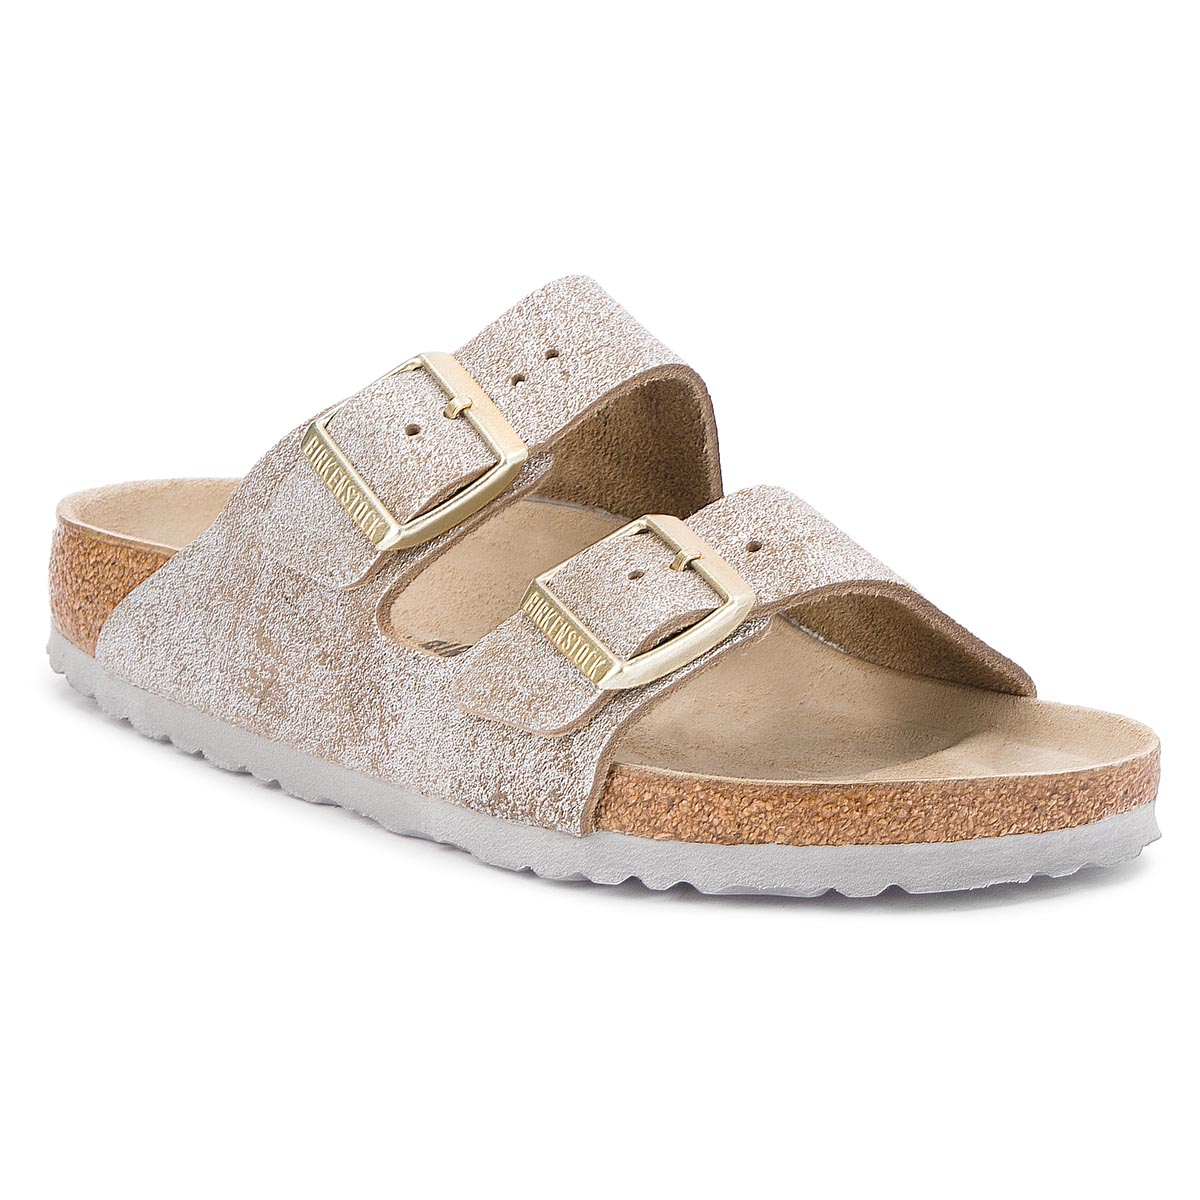 Klapki BIRKENSTOCK - Arizona Bs 1008796 Washed Metallic Blue Silver